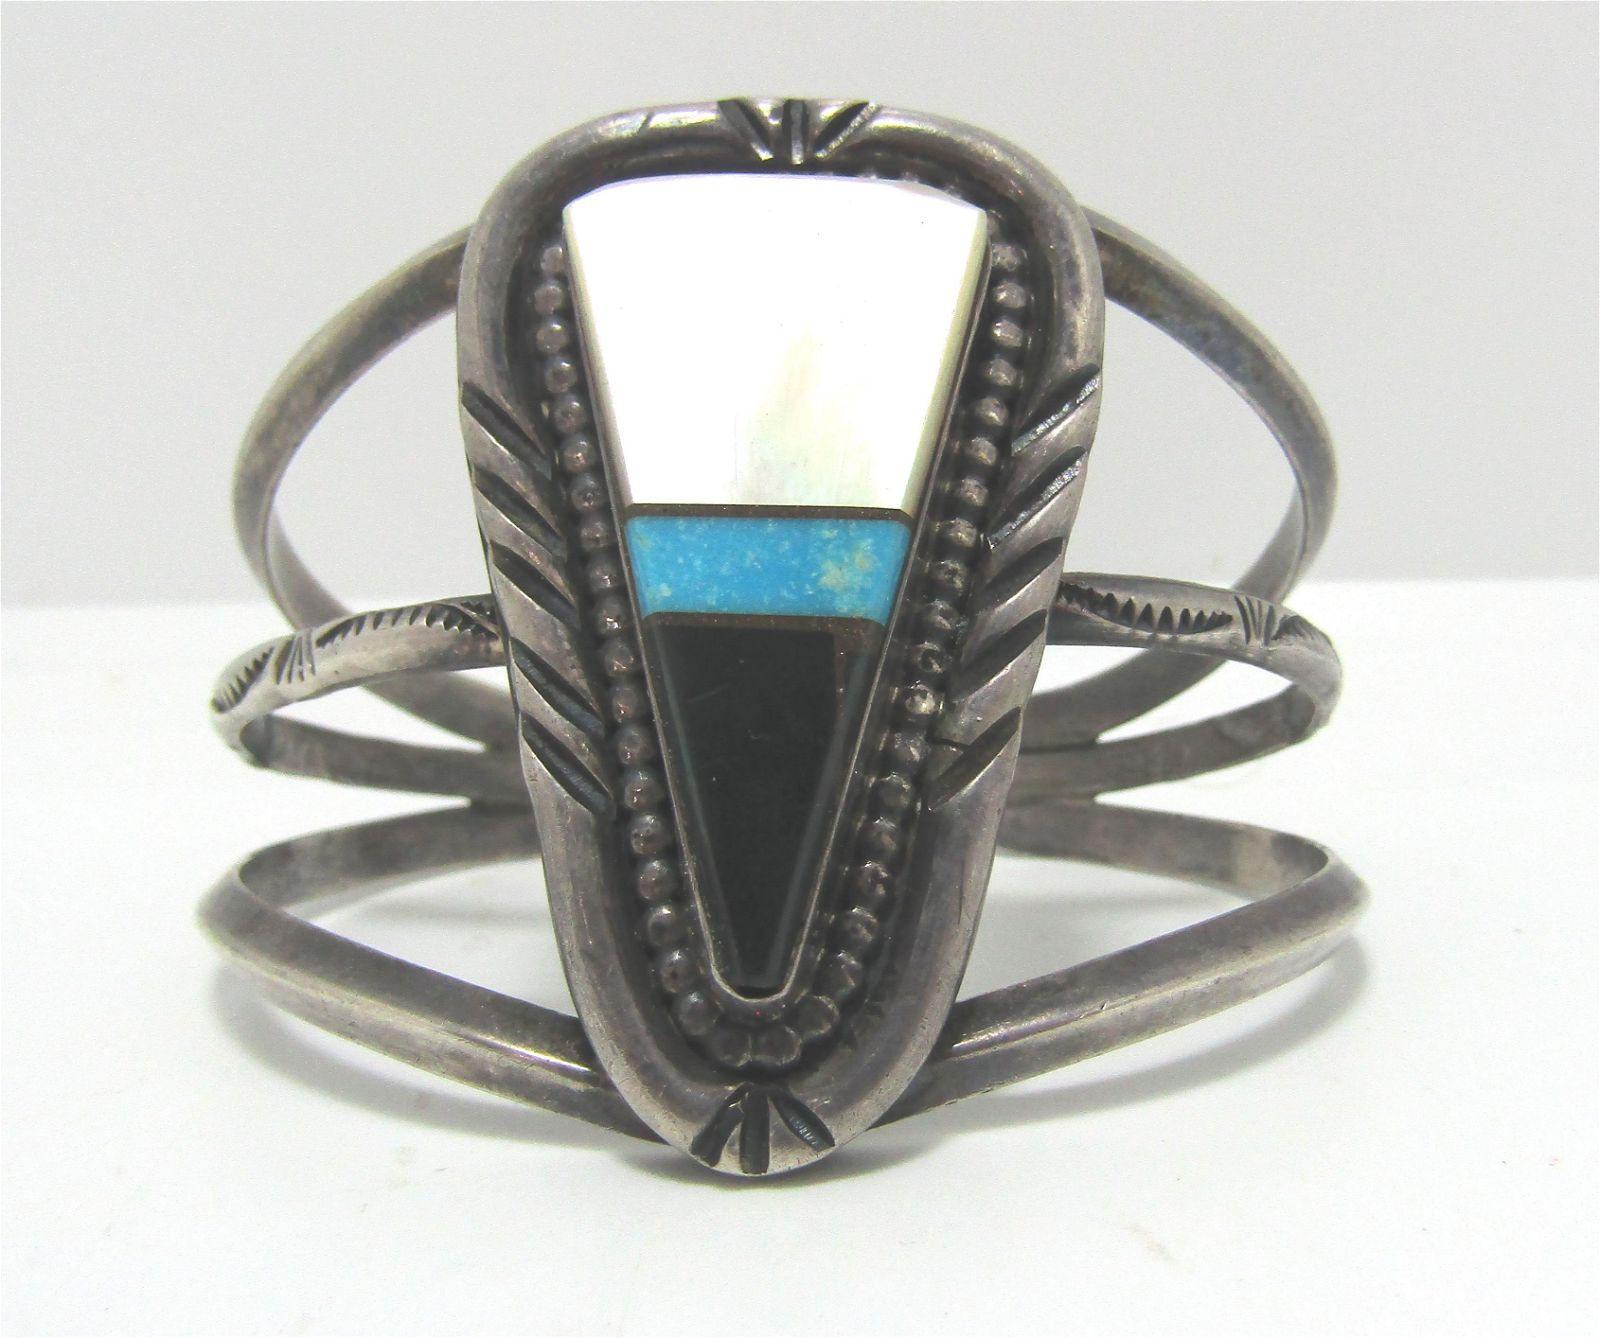 ZUNI TURQUOISE STERLING SILVER CUFF BRACELET